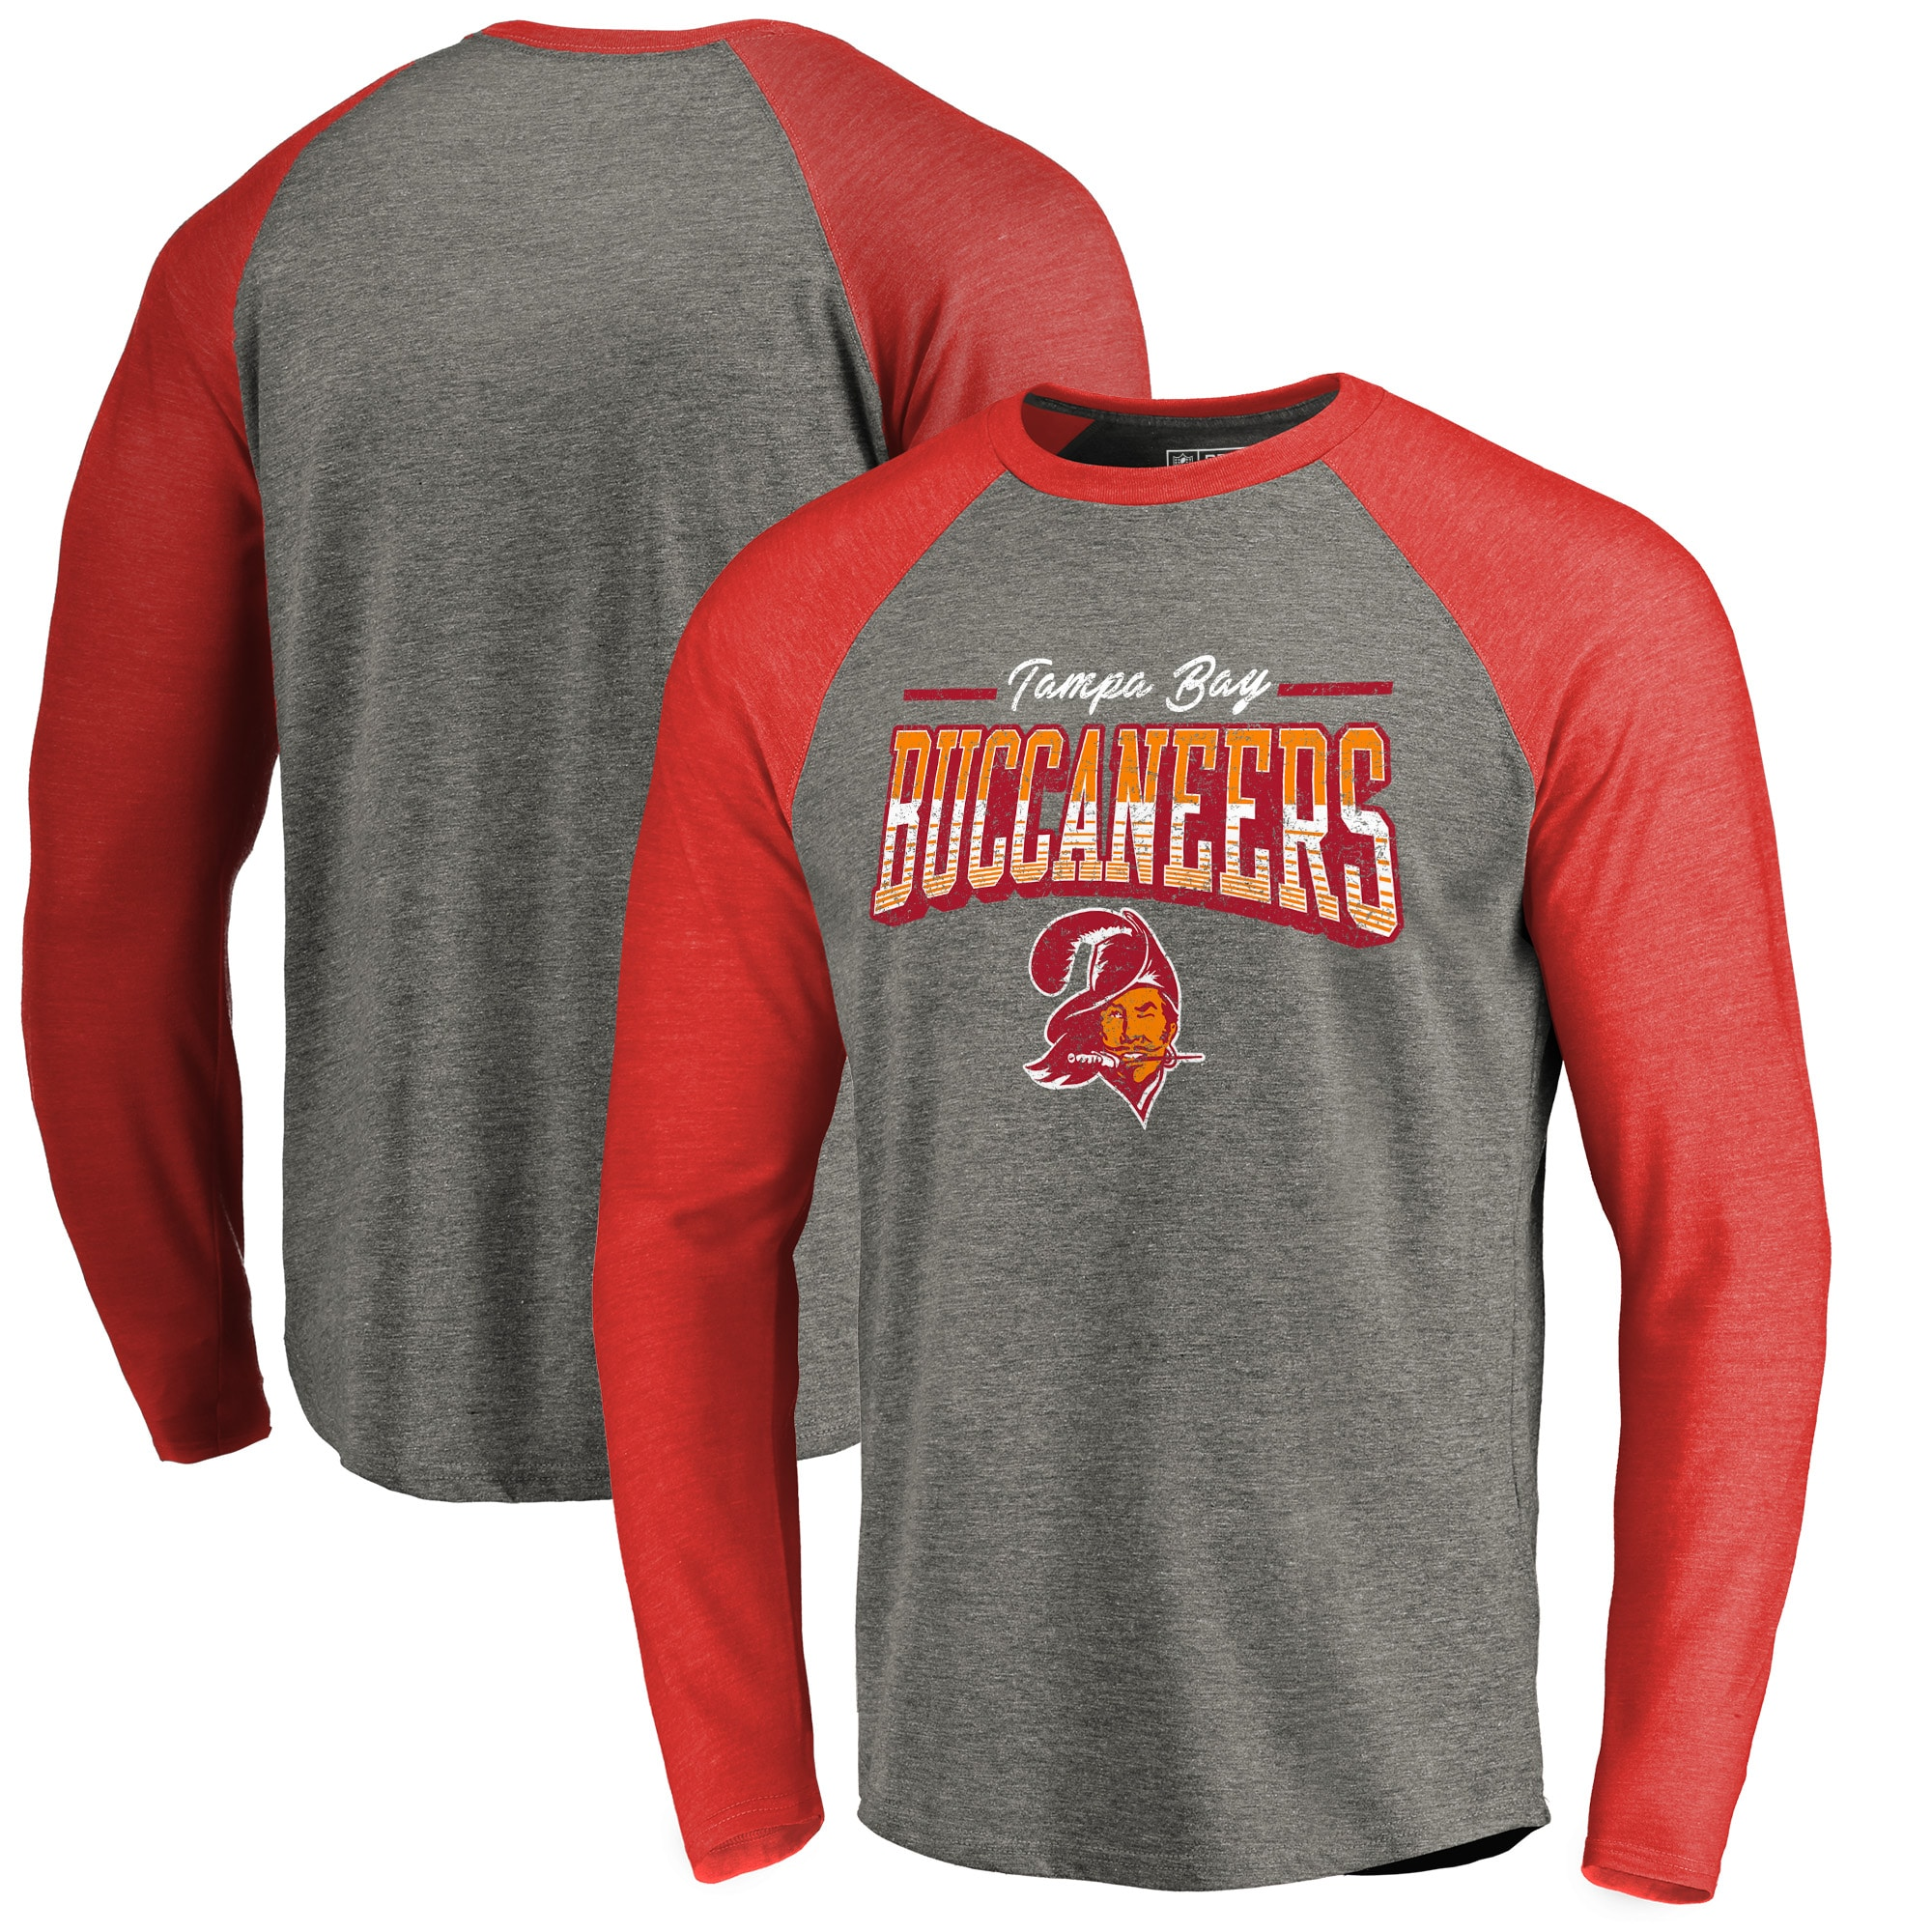 Tampa Bay Buccaneers NFL Pro Line by Fanatics Branded Throwback Collection Season Ticket Big & Tall Long Sleeve Tri-Blend Raglan T-Shirt - Heathered Gray/Red